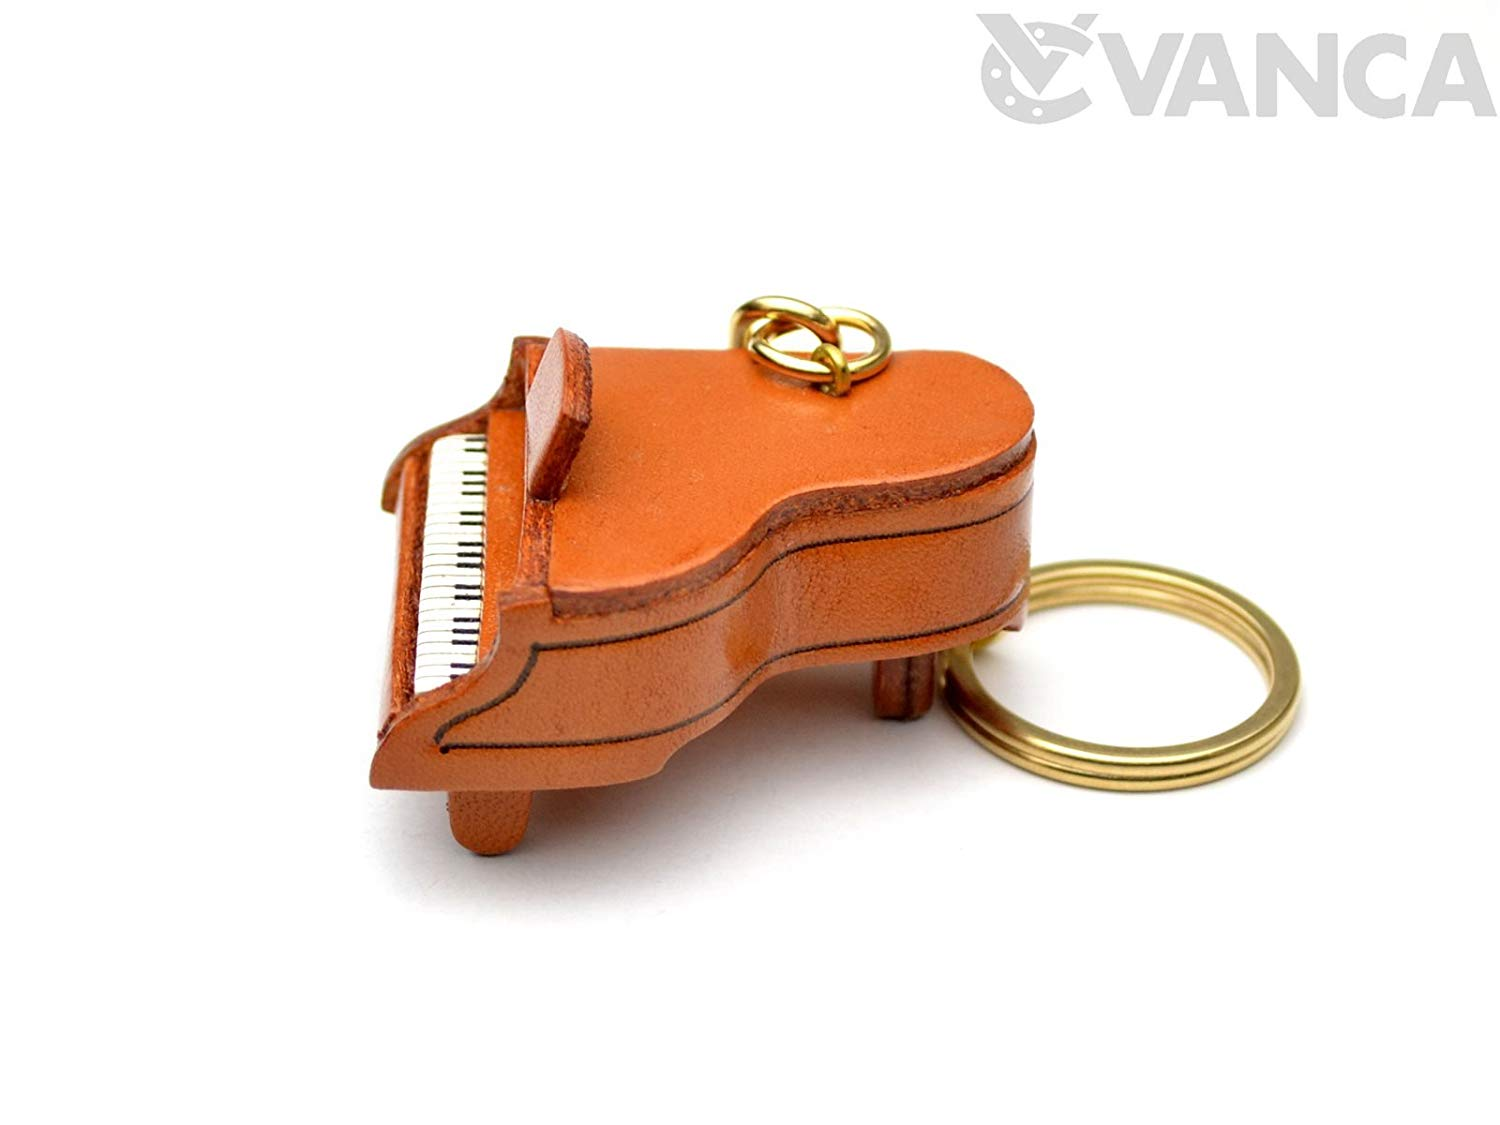 Vanca CRAFT (Handmade made in Japan craftsman) Leather Key Chain Piano